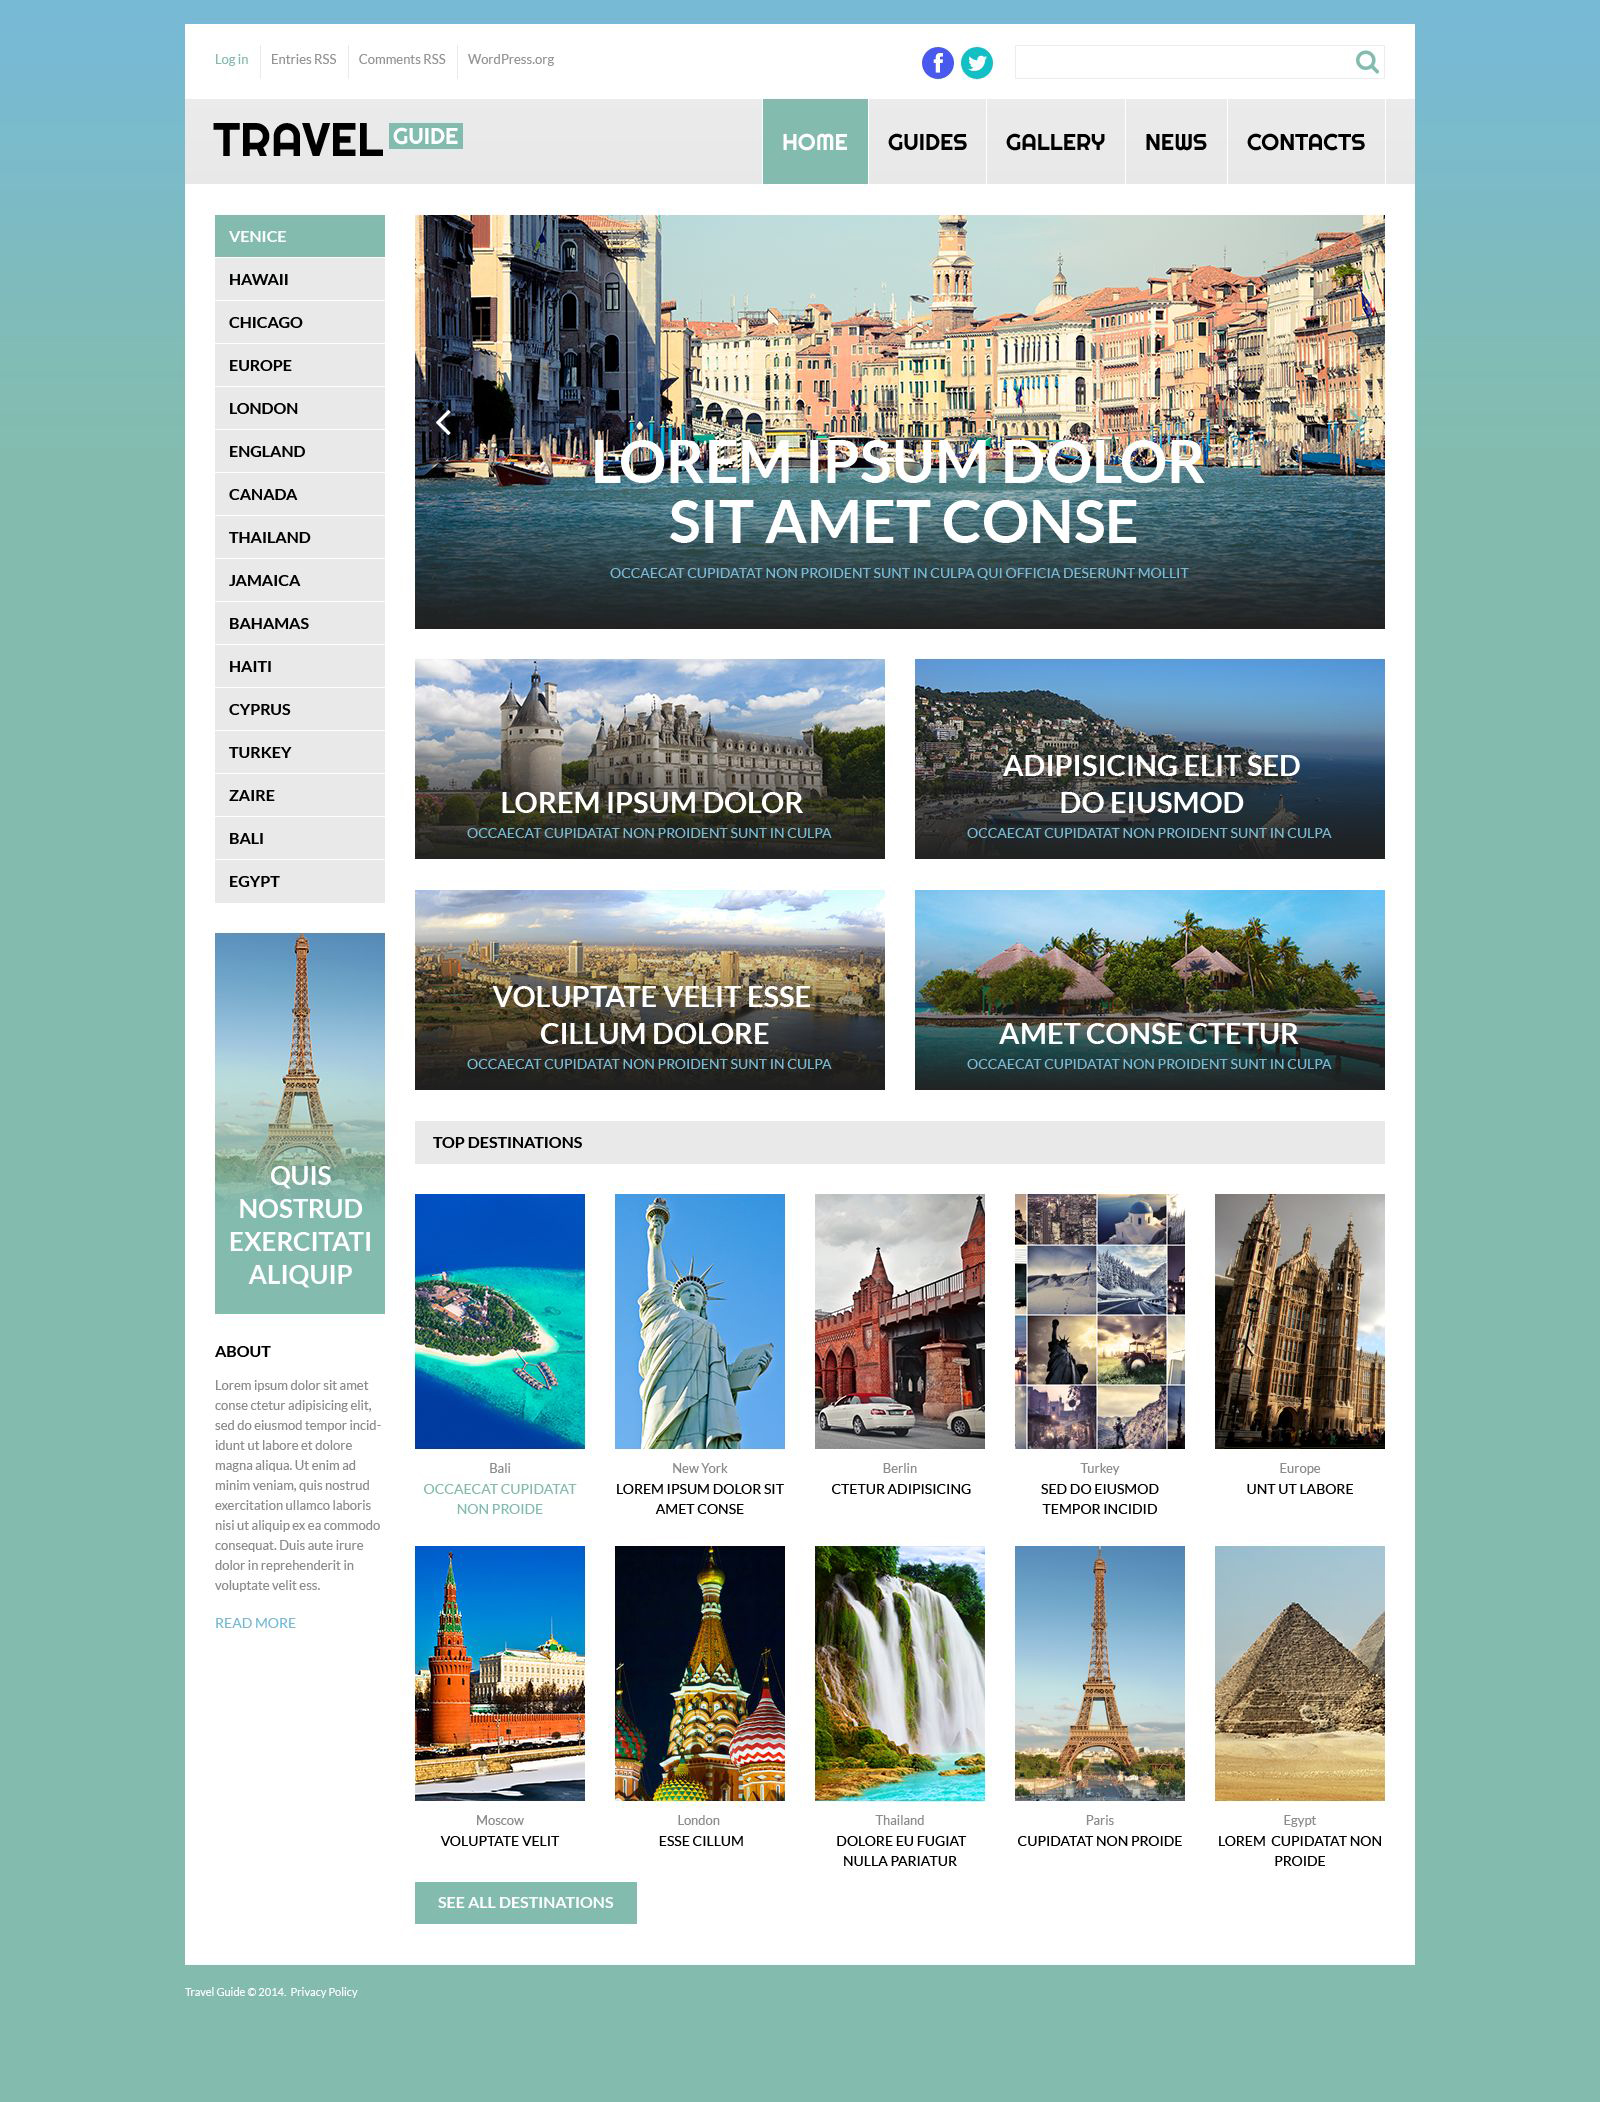 The Travel Guide Agency WordPress Design 53260, one of the best WordPress themes of its kind (travel, most popular), also known as travel guide agency WordPress template, compass WordPress template, tour country WordPress template, resort WordPress template, spa WordPress template, flight hotel WordPress template, car WordPress template, rental WordPress template, cruise WordPress template, sights WordPress template, reservation WordPress template, location WordPress template, authorization WordPress template, ticket WordPress template, guide WordPress template, beach WordPress template, sea WordPress template, relaxation WordPress template, recreation WordPress template, impression WordPress template, air WordPress template, liner WordPress template, traveling WordPress template, apartment WordPress template, vacation WordPress template, rest WordPress template, comfort WordPress template, destination WordPress template, explorat and related with travel guide agency, compass, tour country, resort, spa, flight hotel, car, rental, cruise, sights, reservation, location, authorization, ticket, guide, beach, sea, relaxation, recreation, impression, air, liner, traveling, apartment, vacation, rest, comfort, destination, explorat, etc.